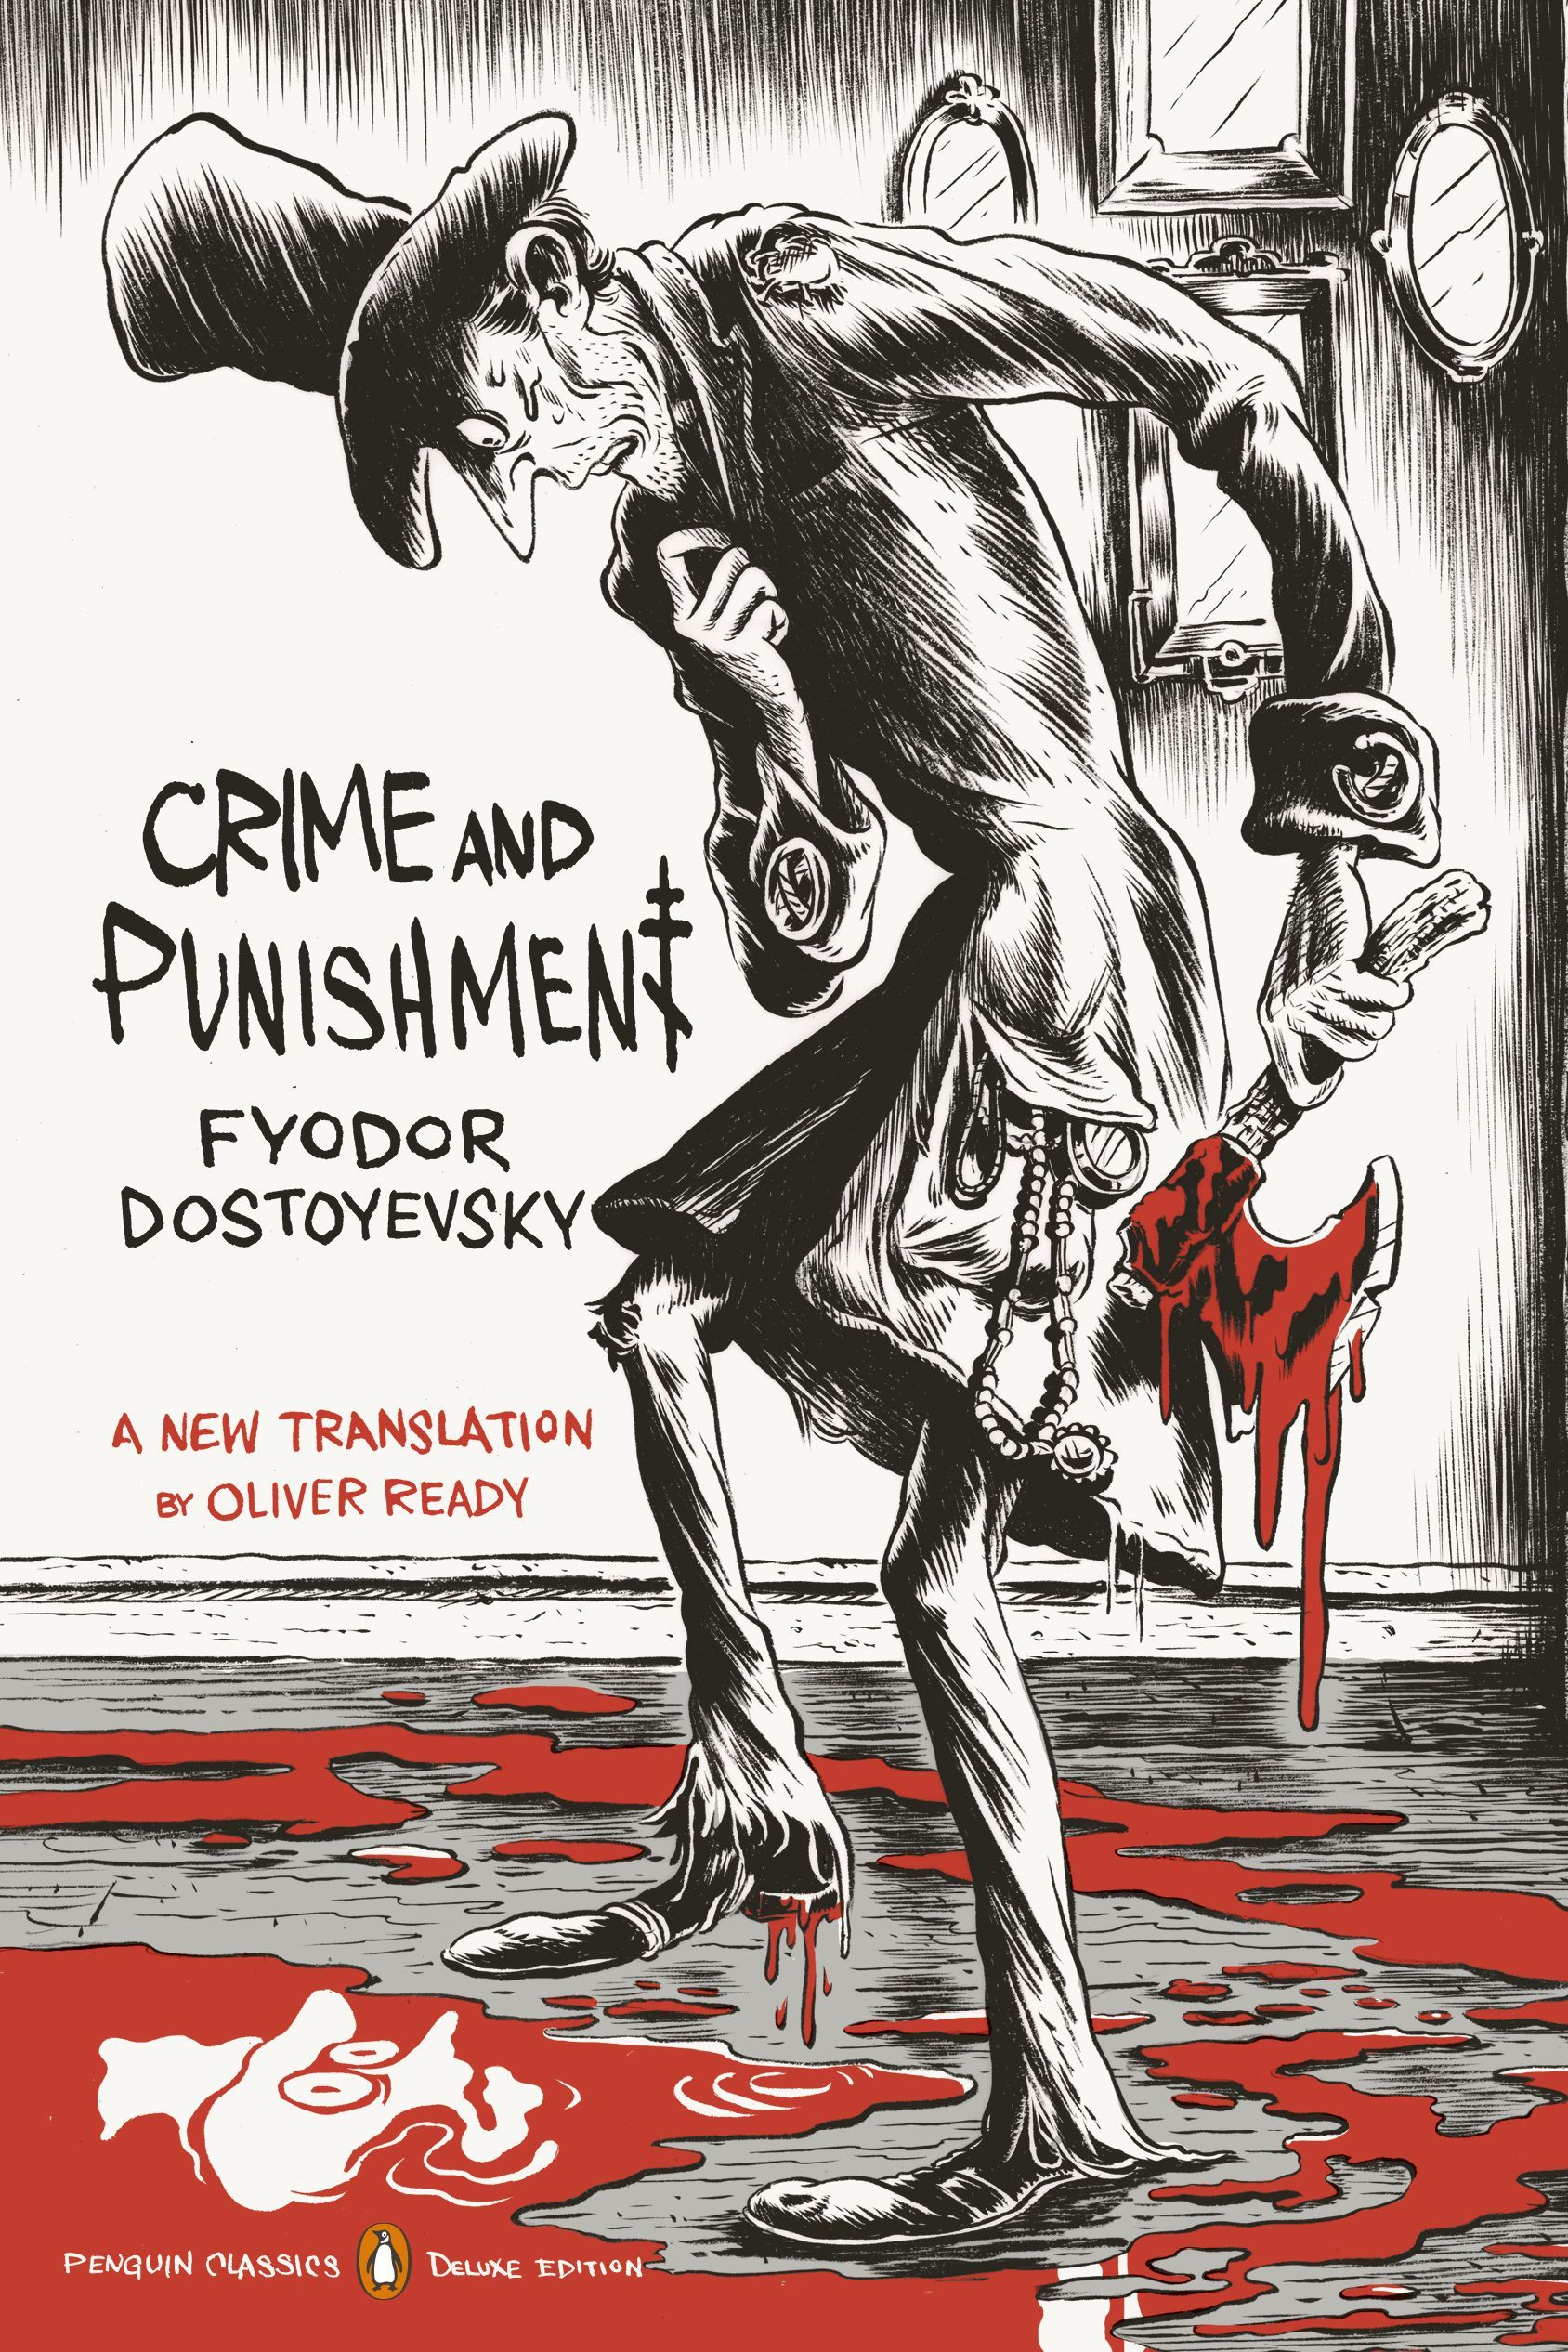 Crime and Punishment by Fyodor Dostoyevsky & Oliver Ready